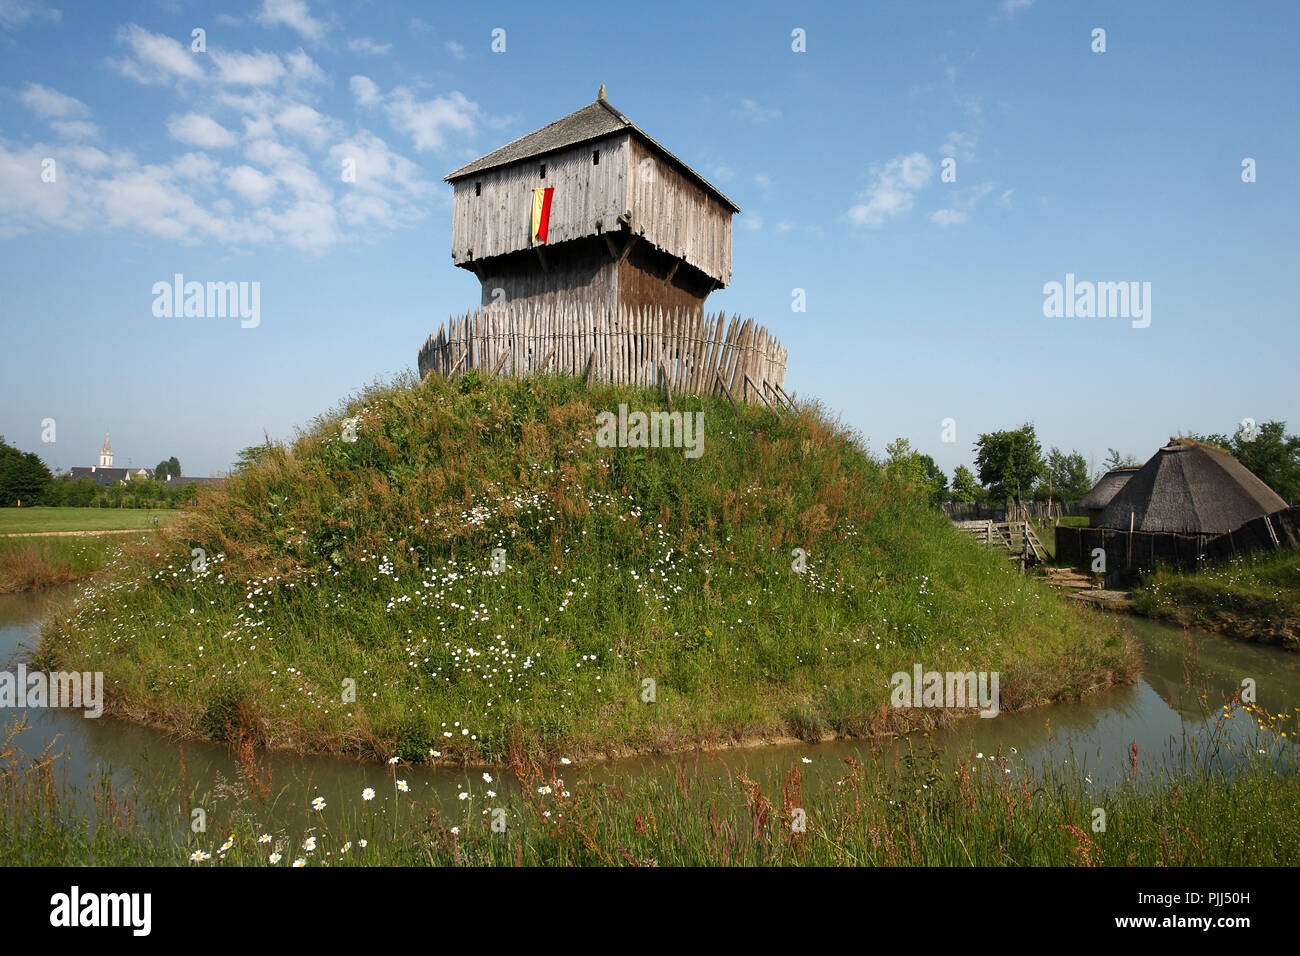 France, Saint Sylvain d'Anjou motte-and-bailey castle with moats and village. Historical reconstruction - Stock Image